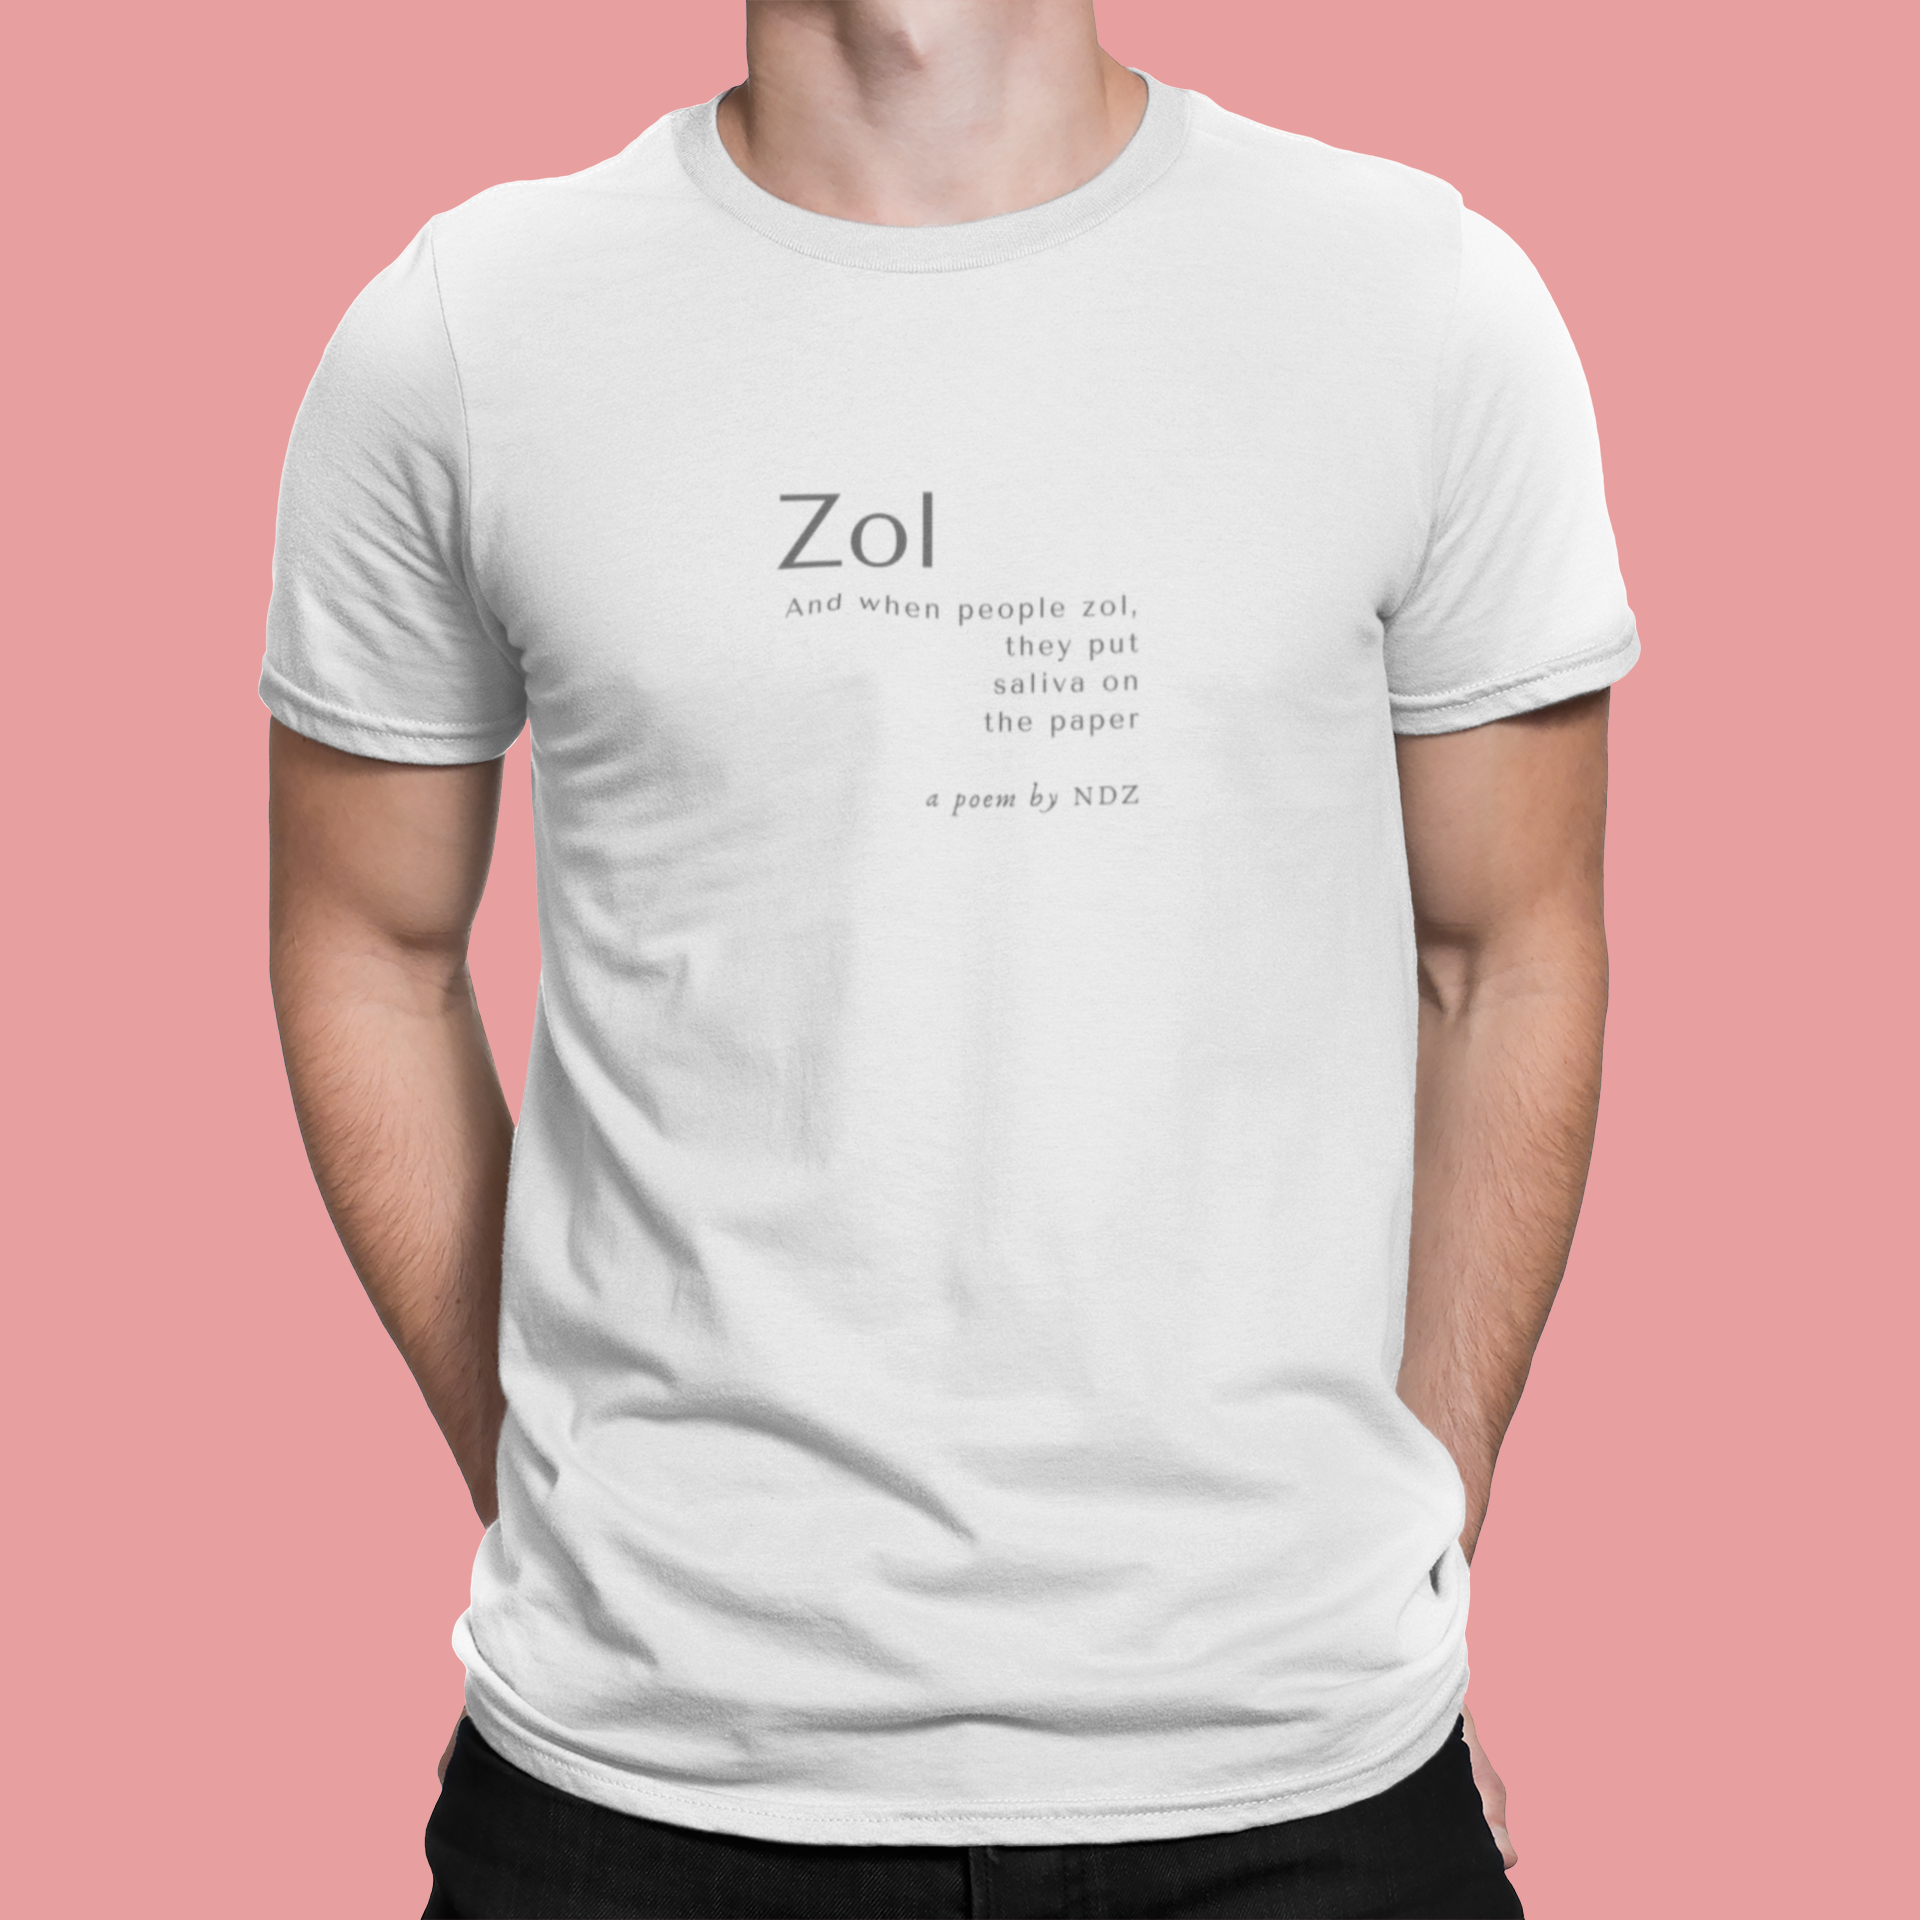 The Zol Shirt